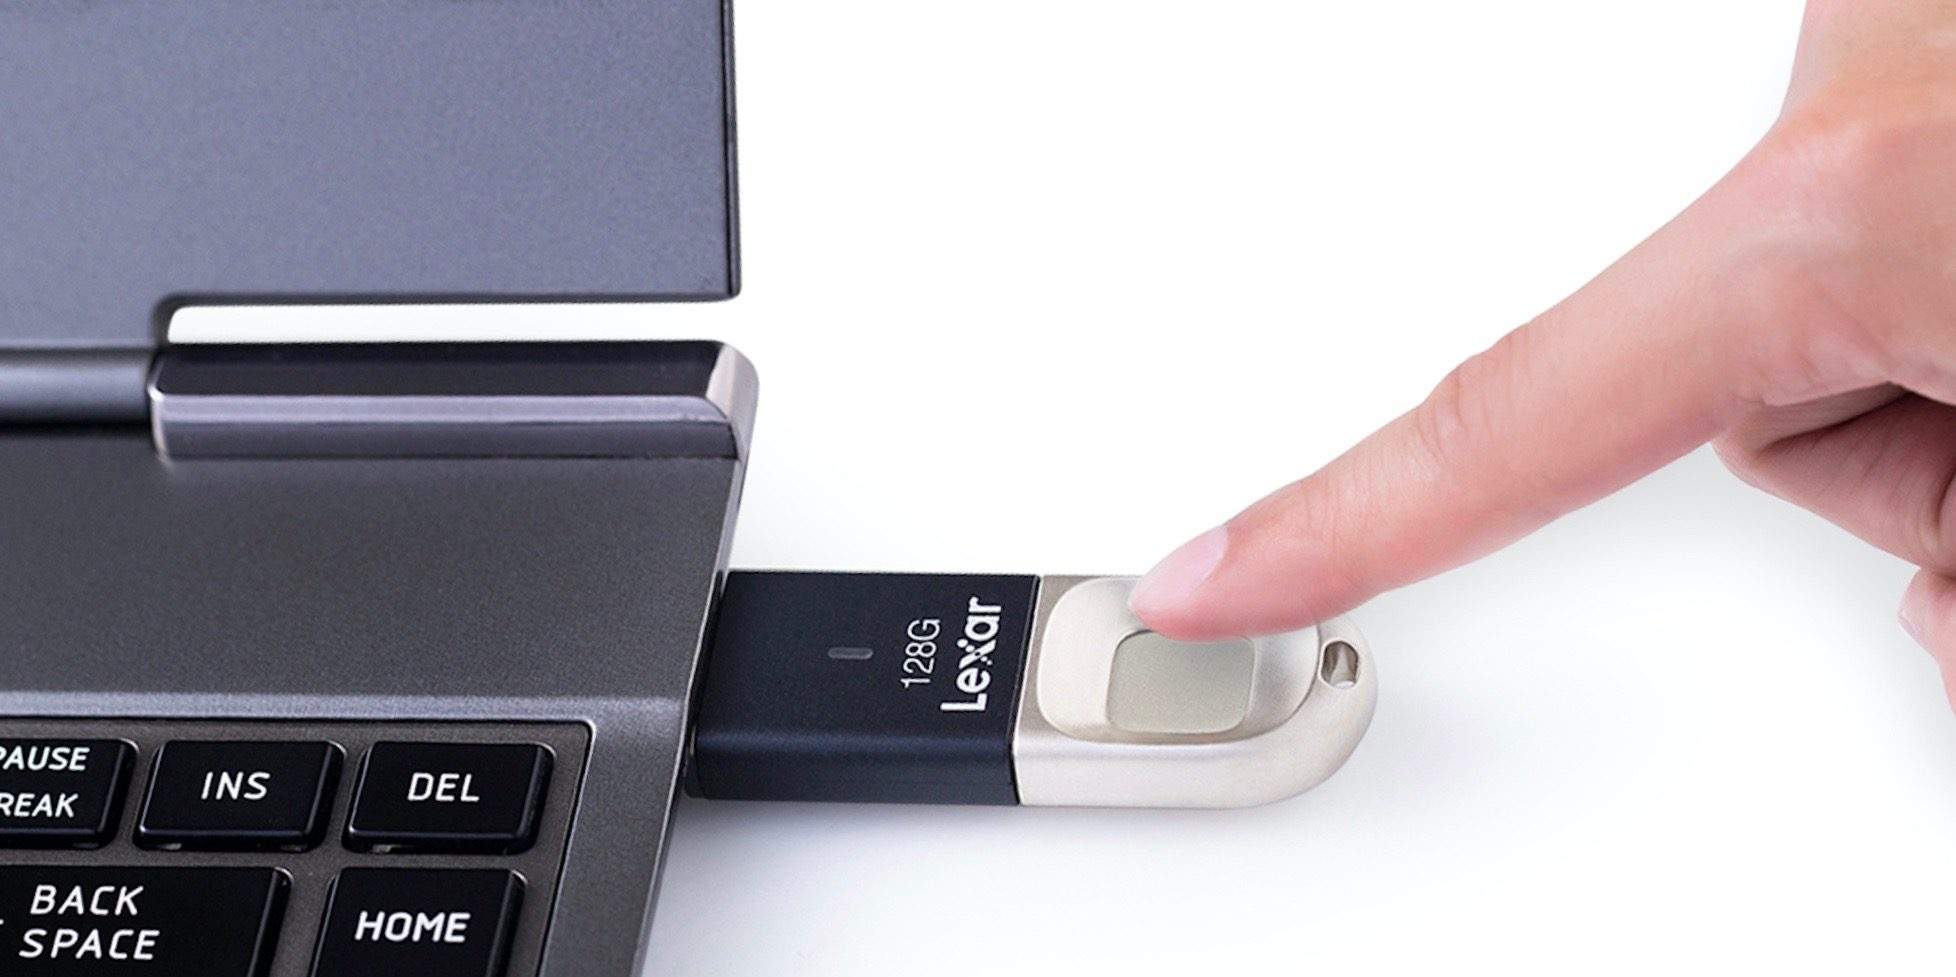 USB flash drive with biometric protection for those who are worried about data security